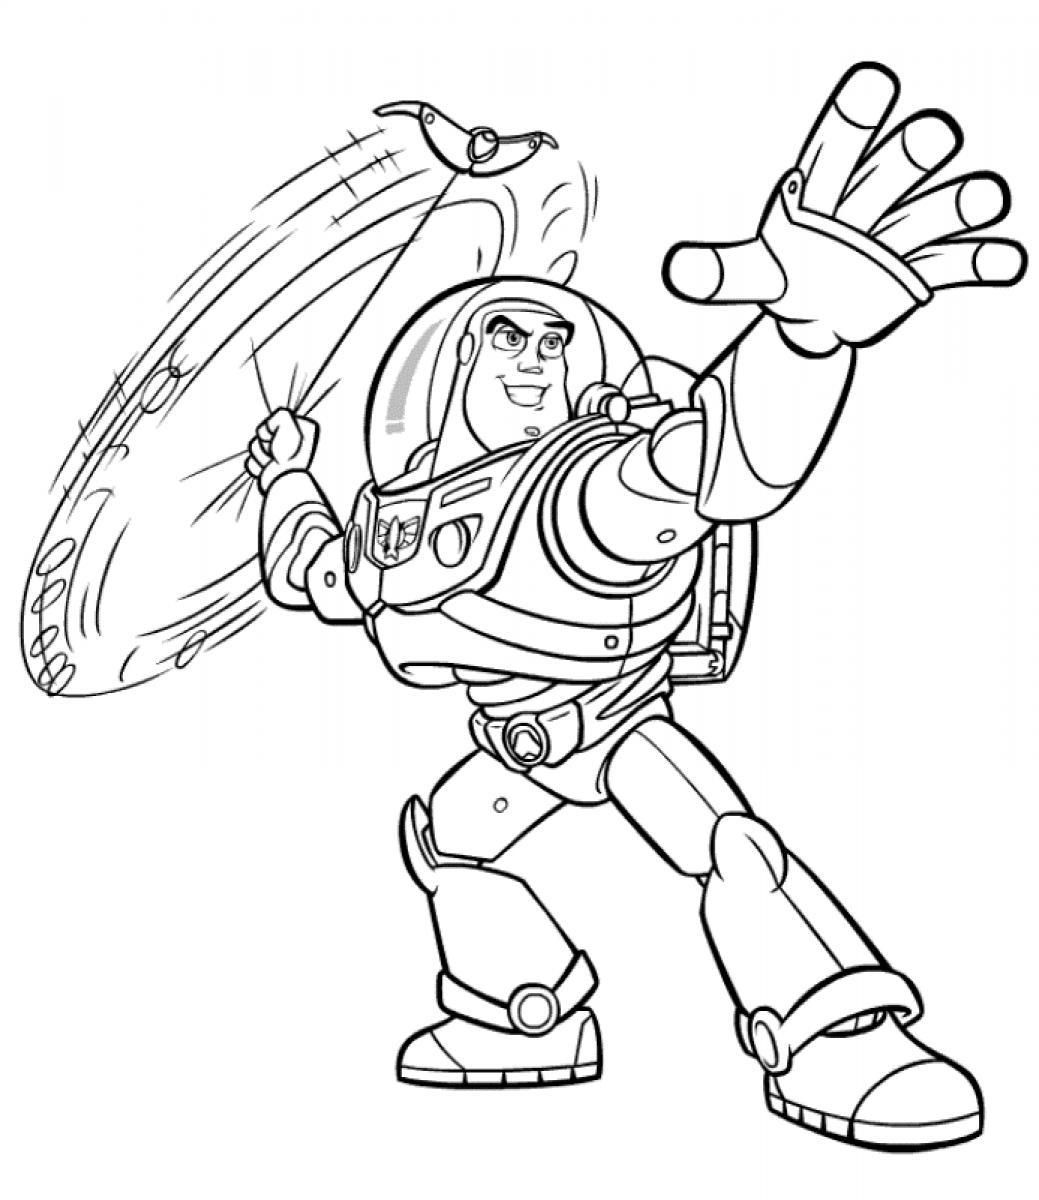 buzz lightyear for coloring free printable buzz lightyear coloring pages for kids buzz for lightyear coloring 1 1